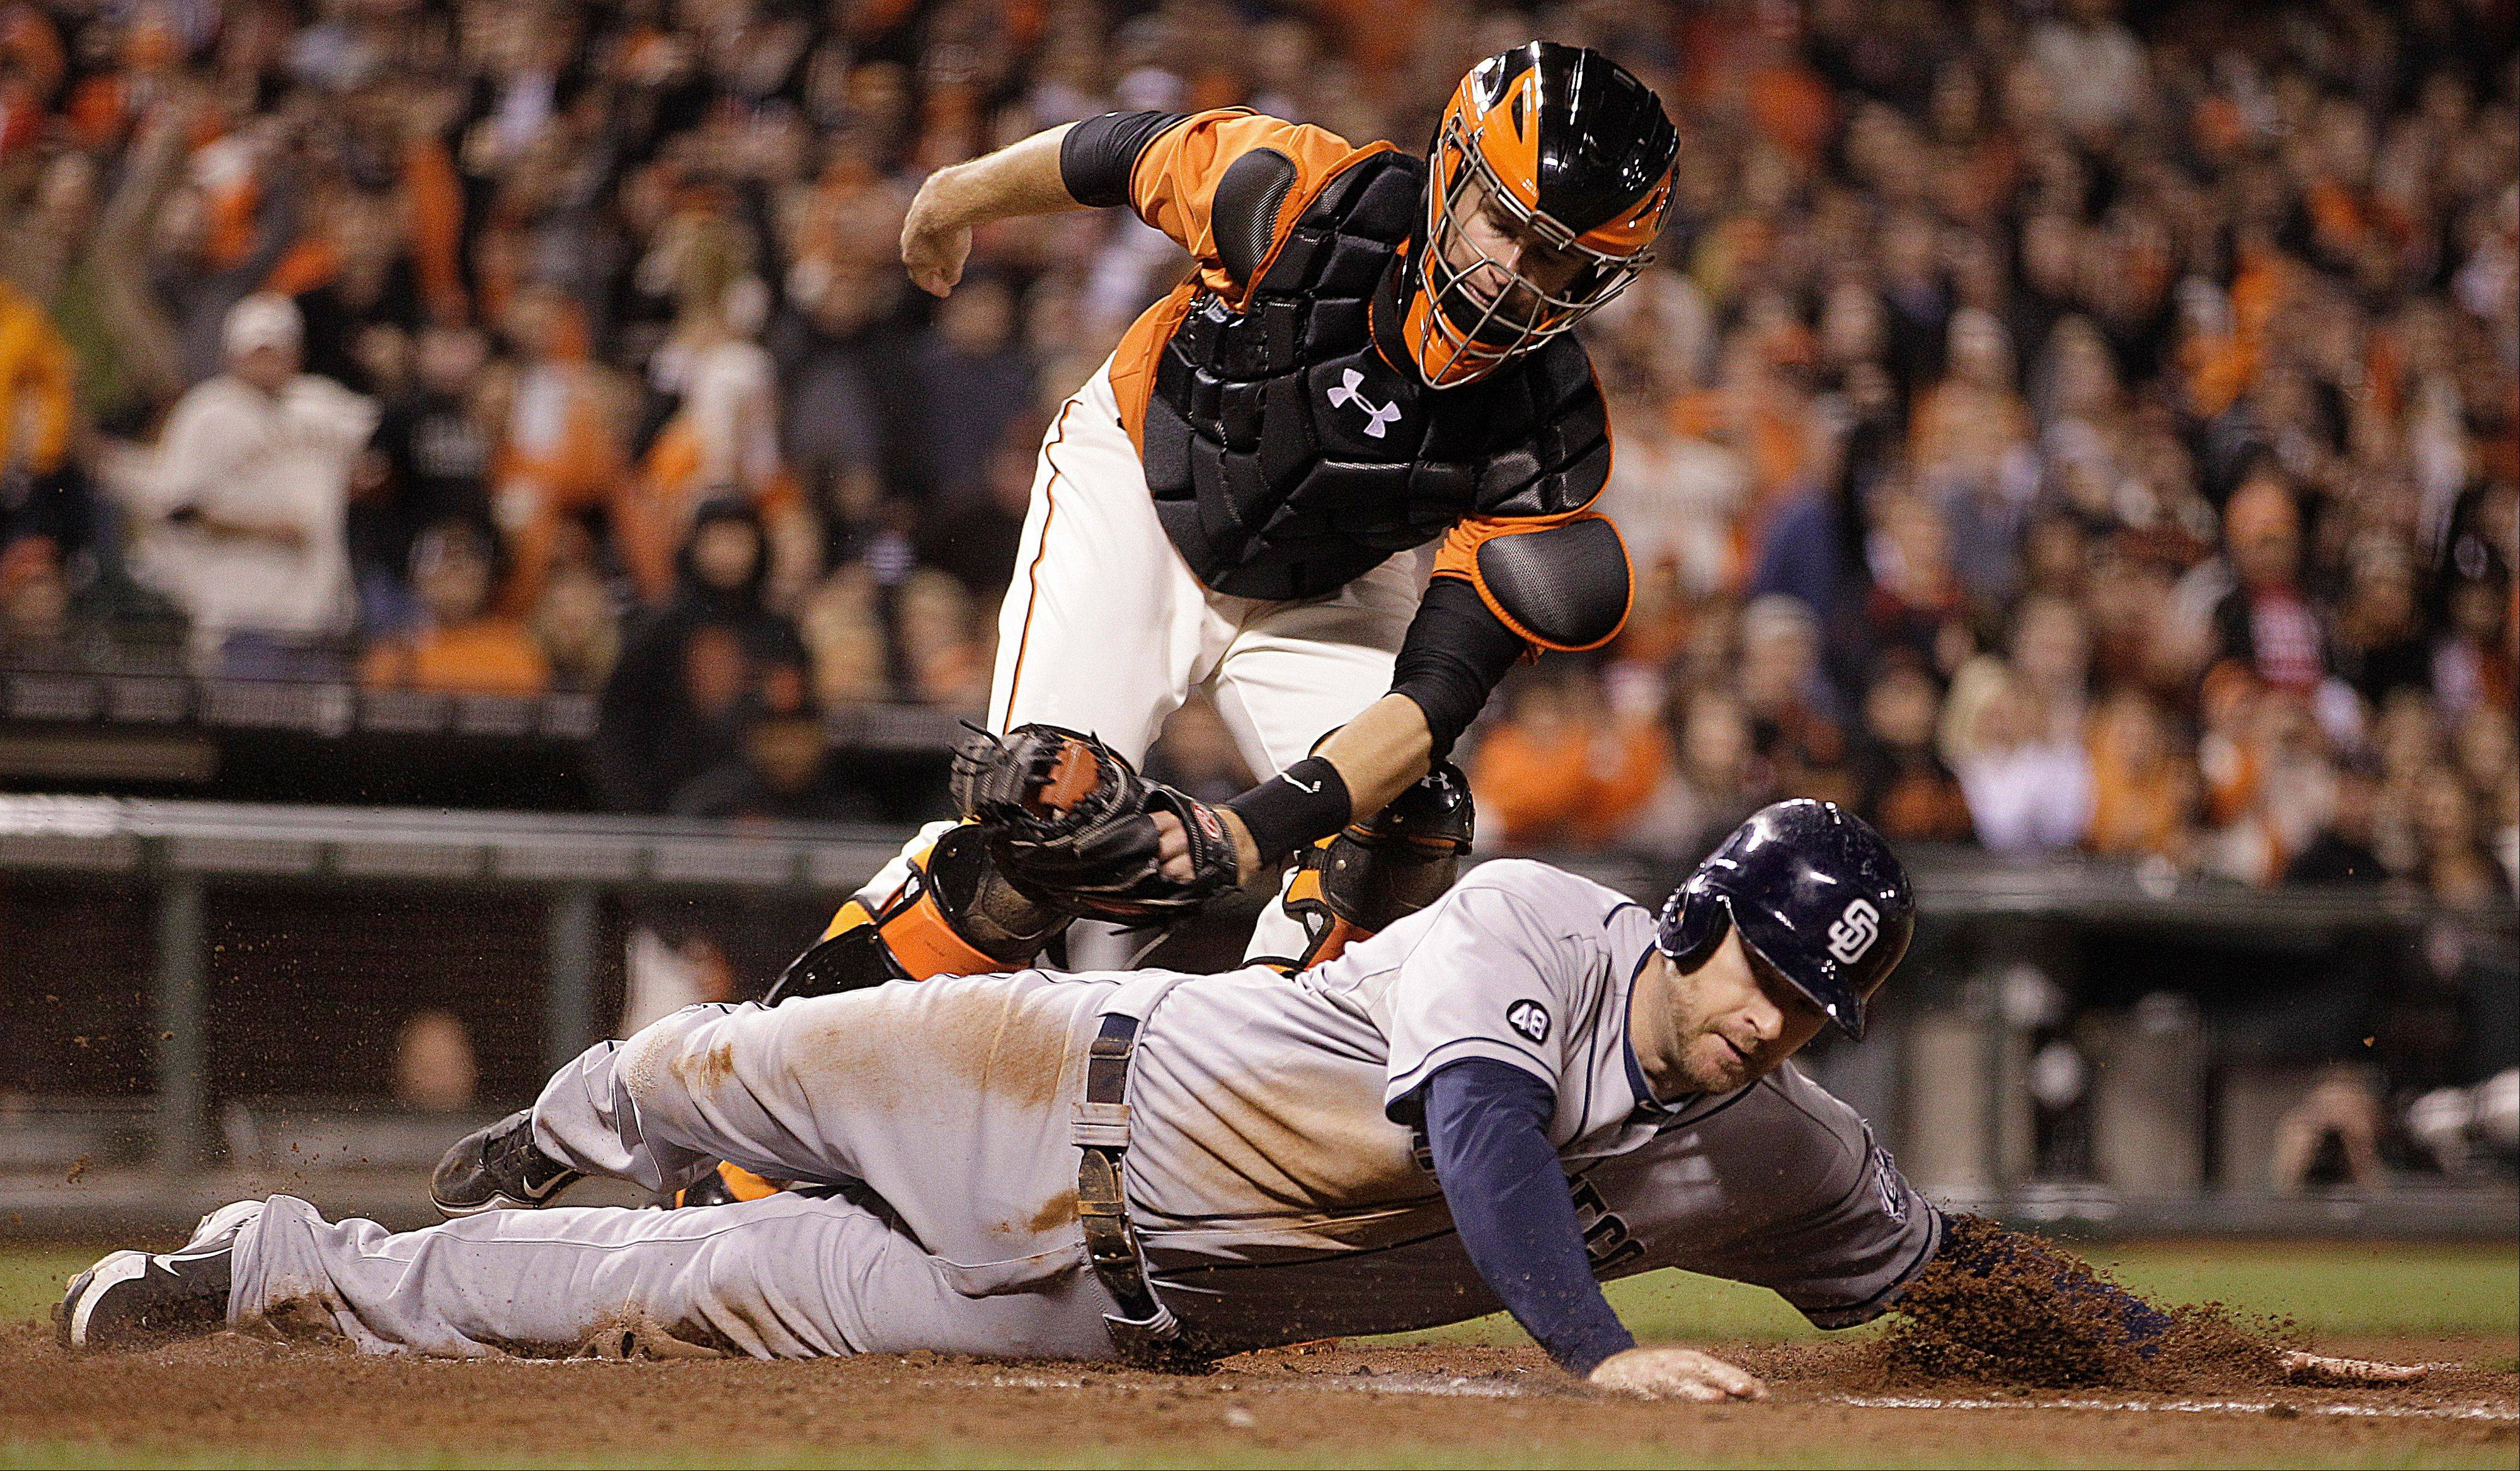 Giants catcher Buster Posey tags out the Padres' Chase Headley at home plate in the sixth inning Friday in San Francisco. Headley attempted to score on a double by Yasmani Grandal.